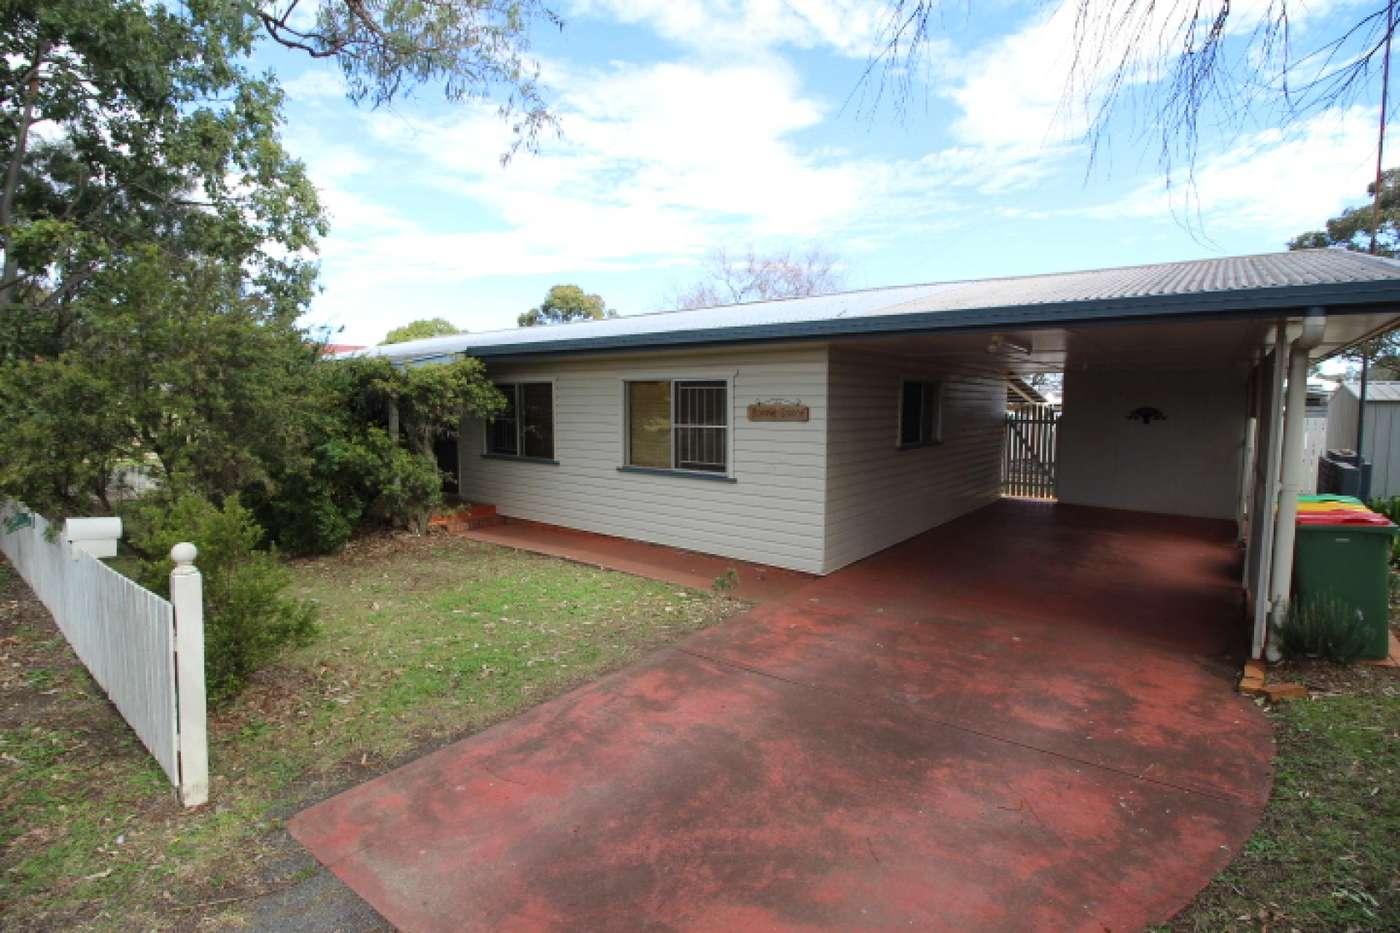 Main view of Homely house listing, 4 Parker Street, Toowoomba, QLD 4350